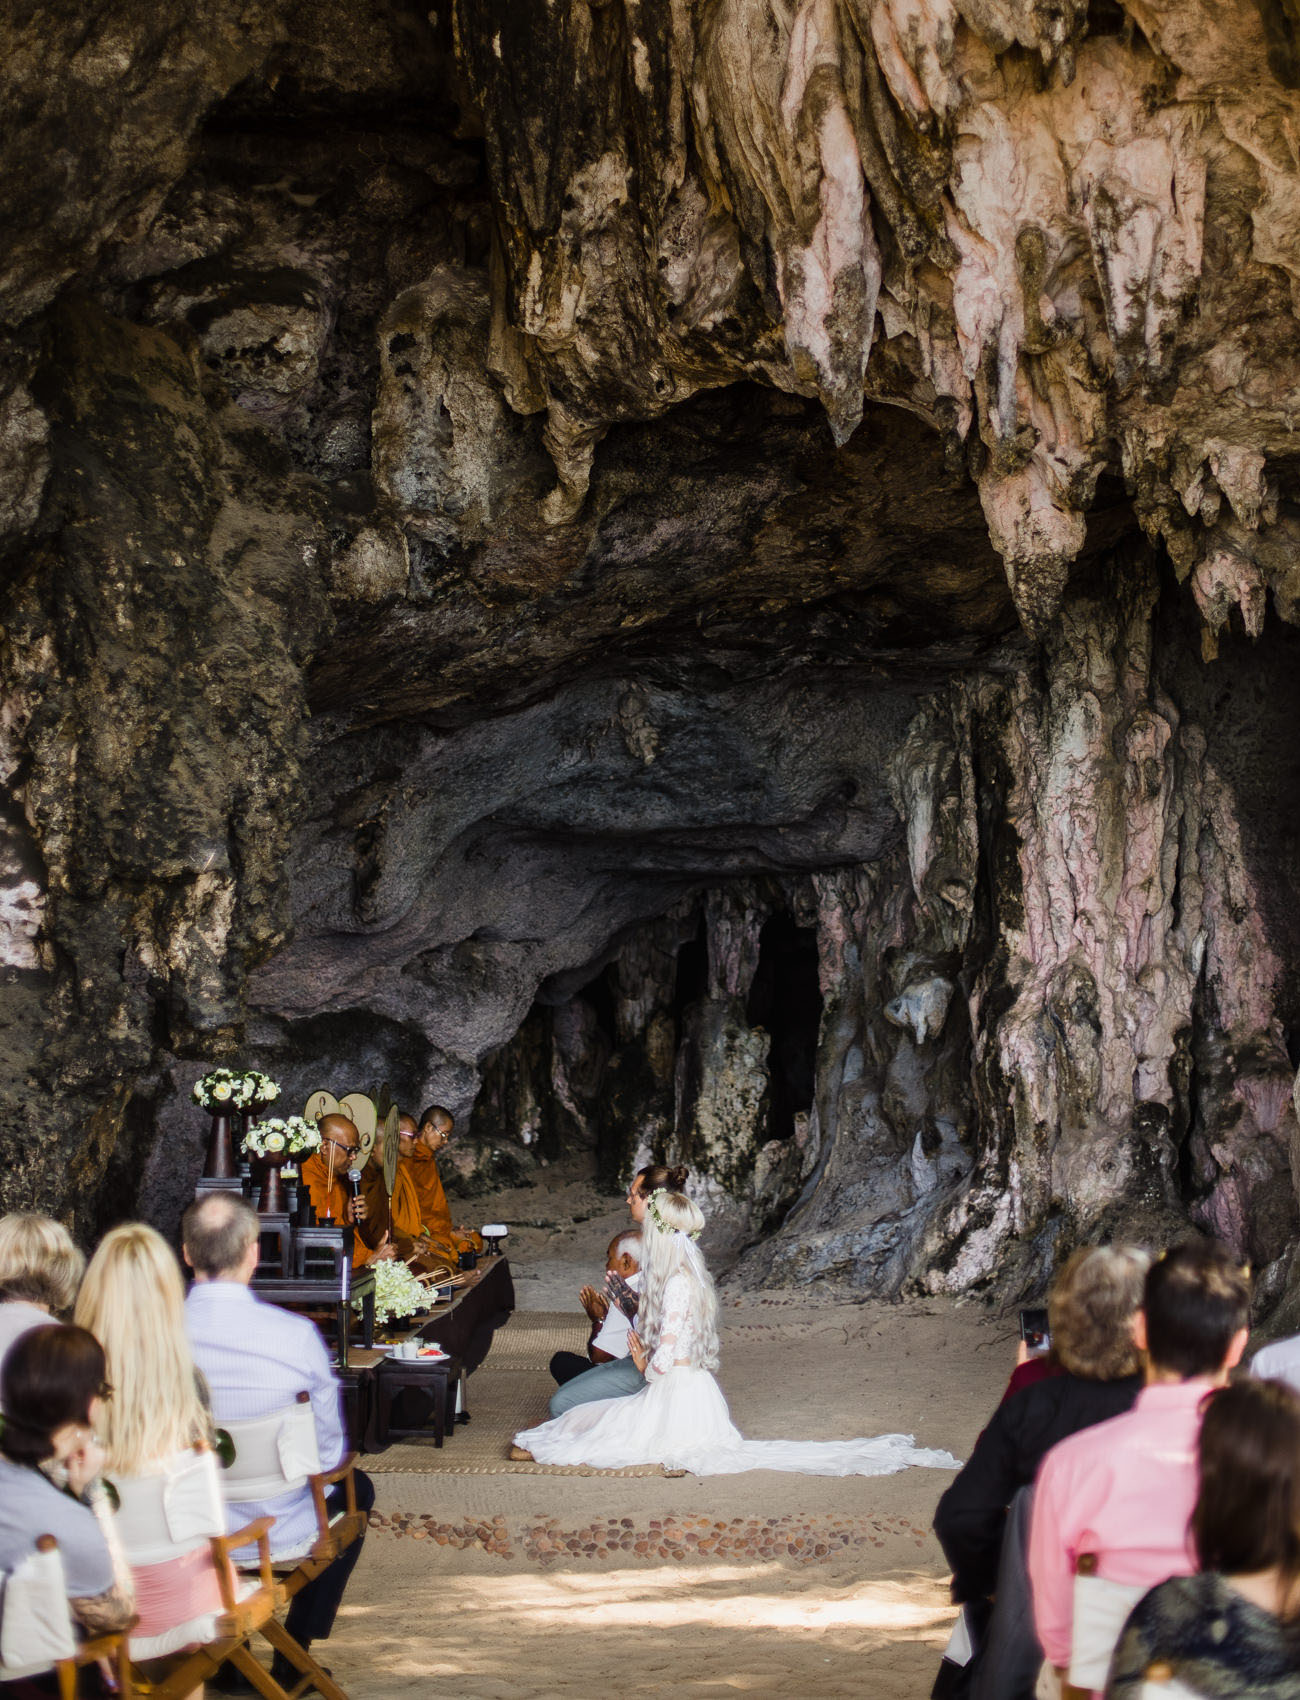 To start off the day, the two had a Buddhist ceremony in the morning in a cave